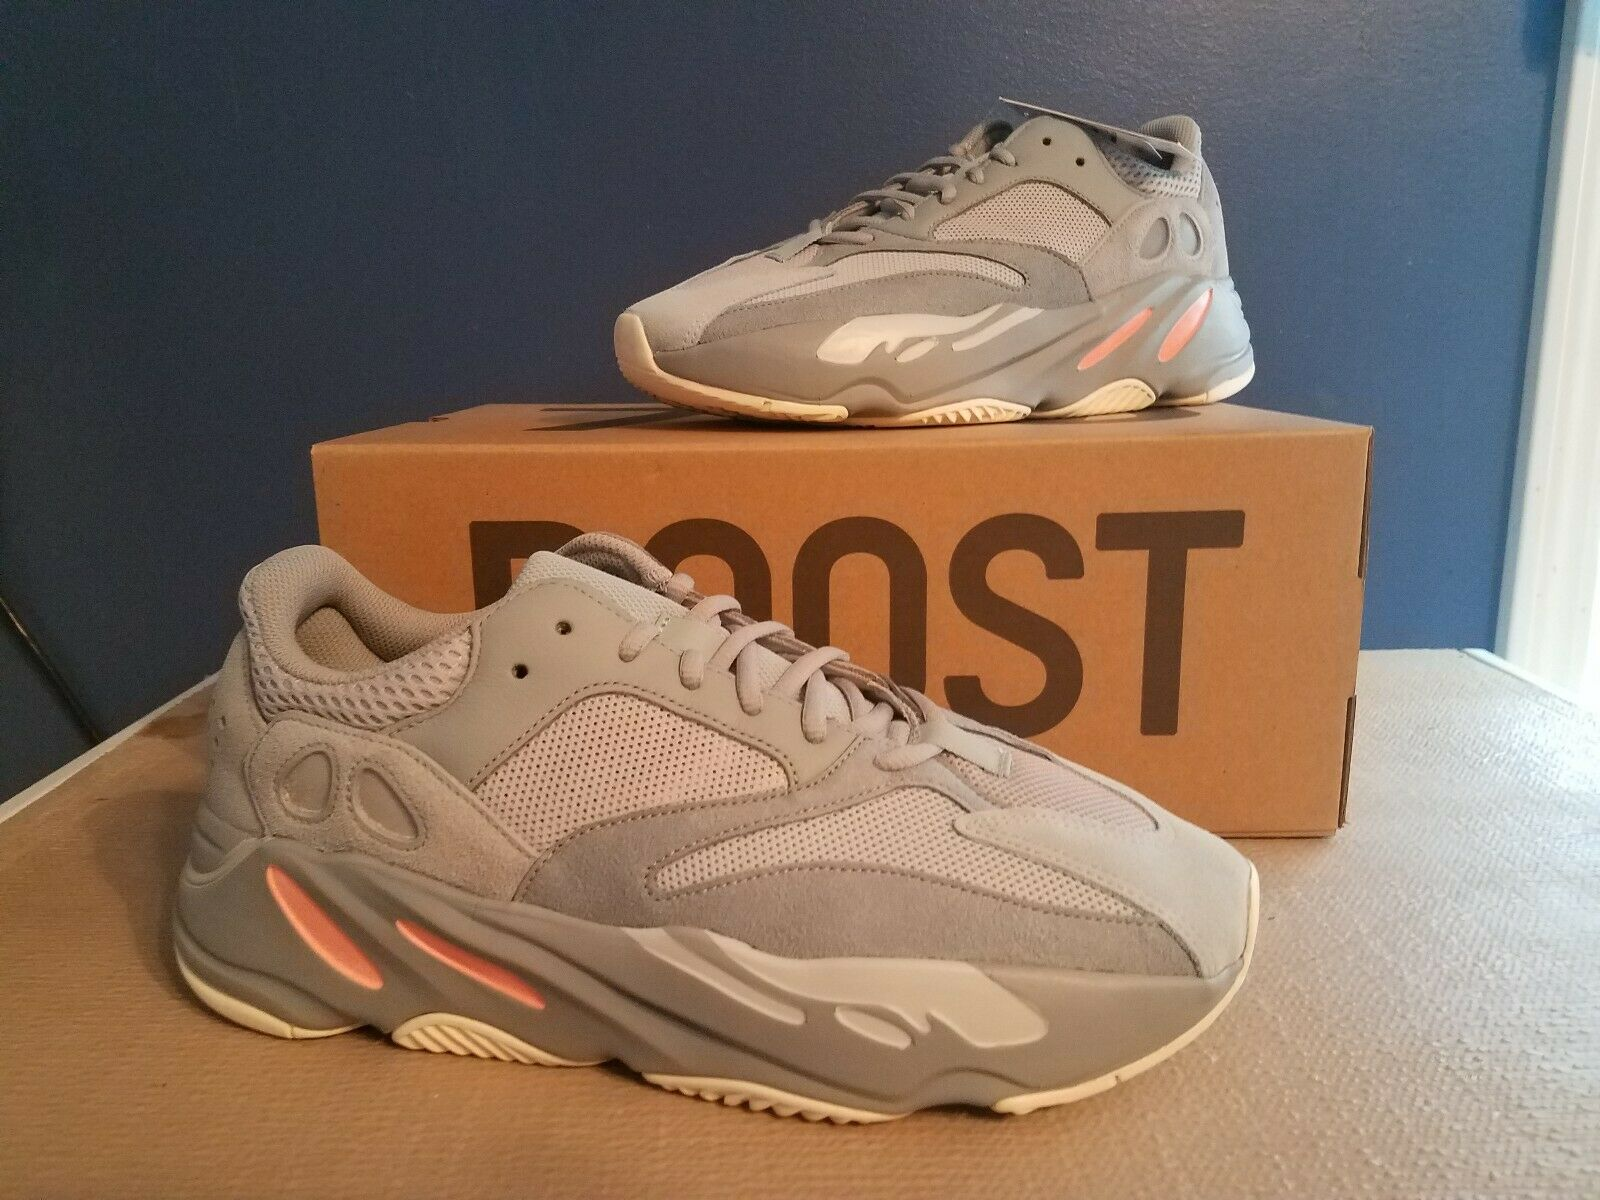 Adidas Yeezy Boost 700 Inertia Size 10.5 In Hand Ready to Ship Proof of Receipt